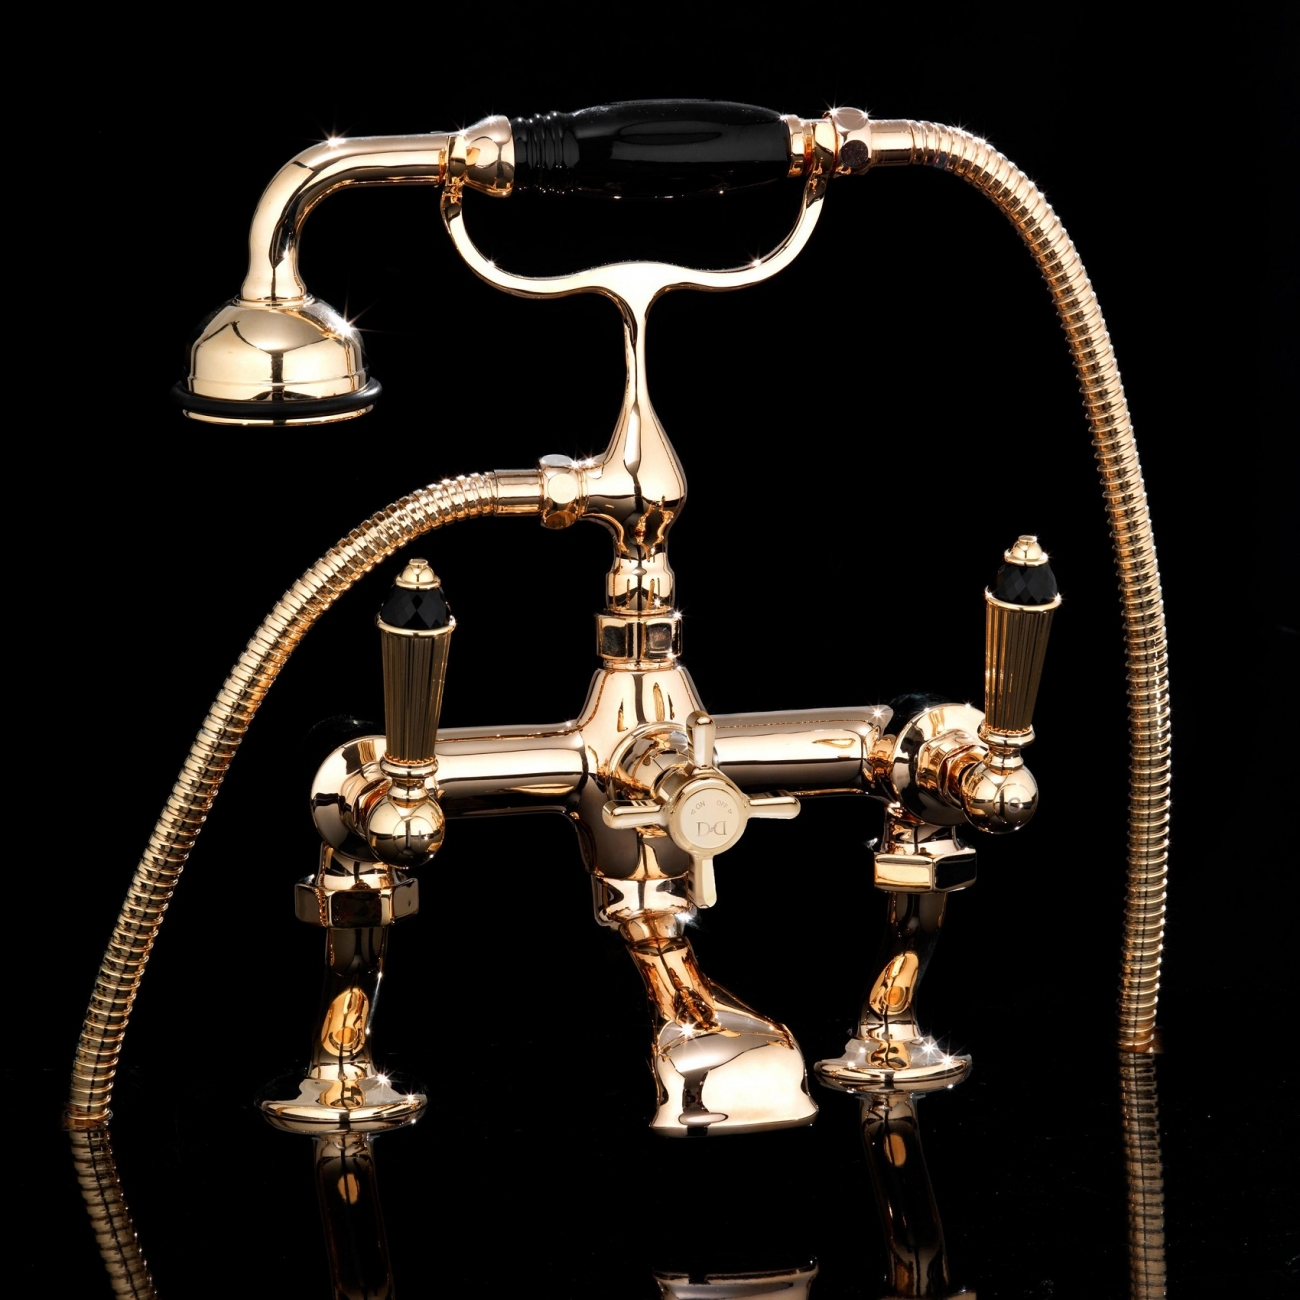 Piastrelle Devon E Devon.Devon Devon Black Diamond Bath Shower Mixer Tattahome